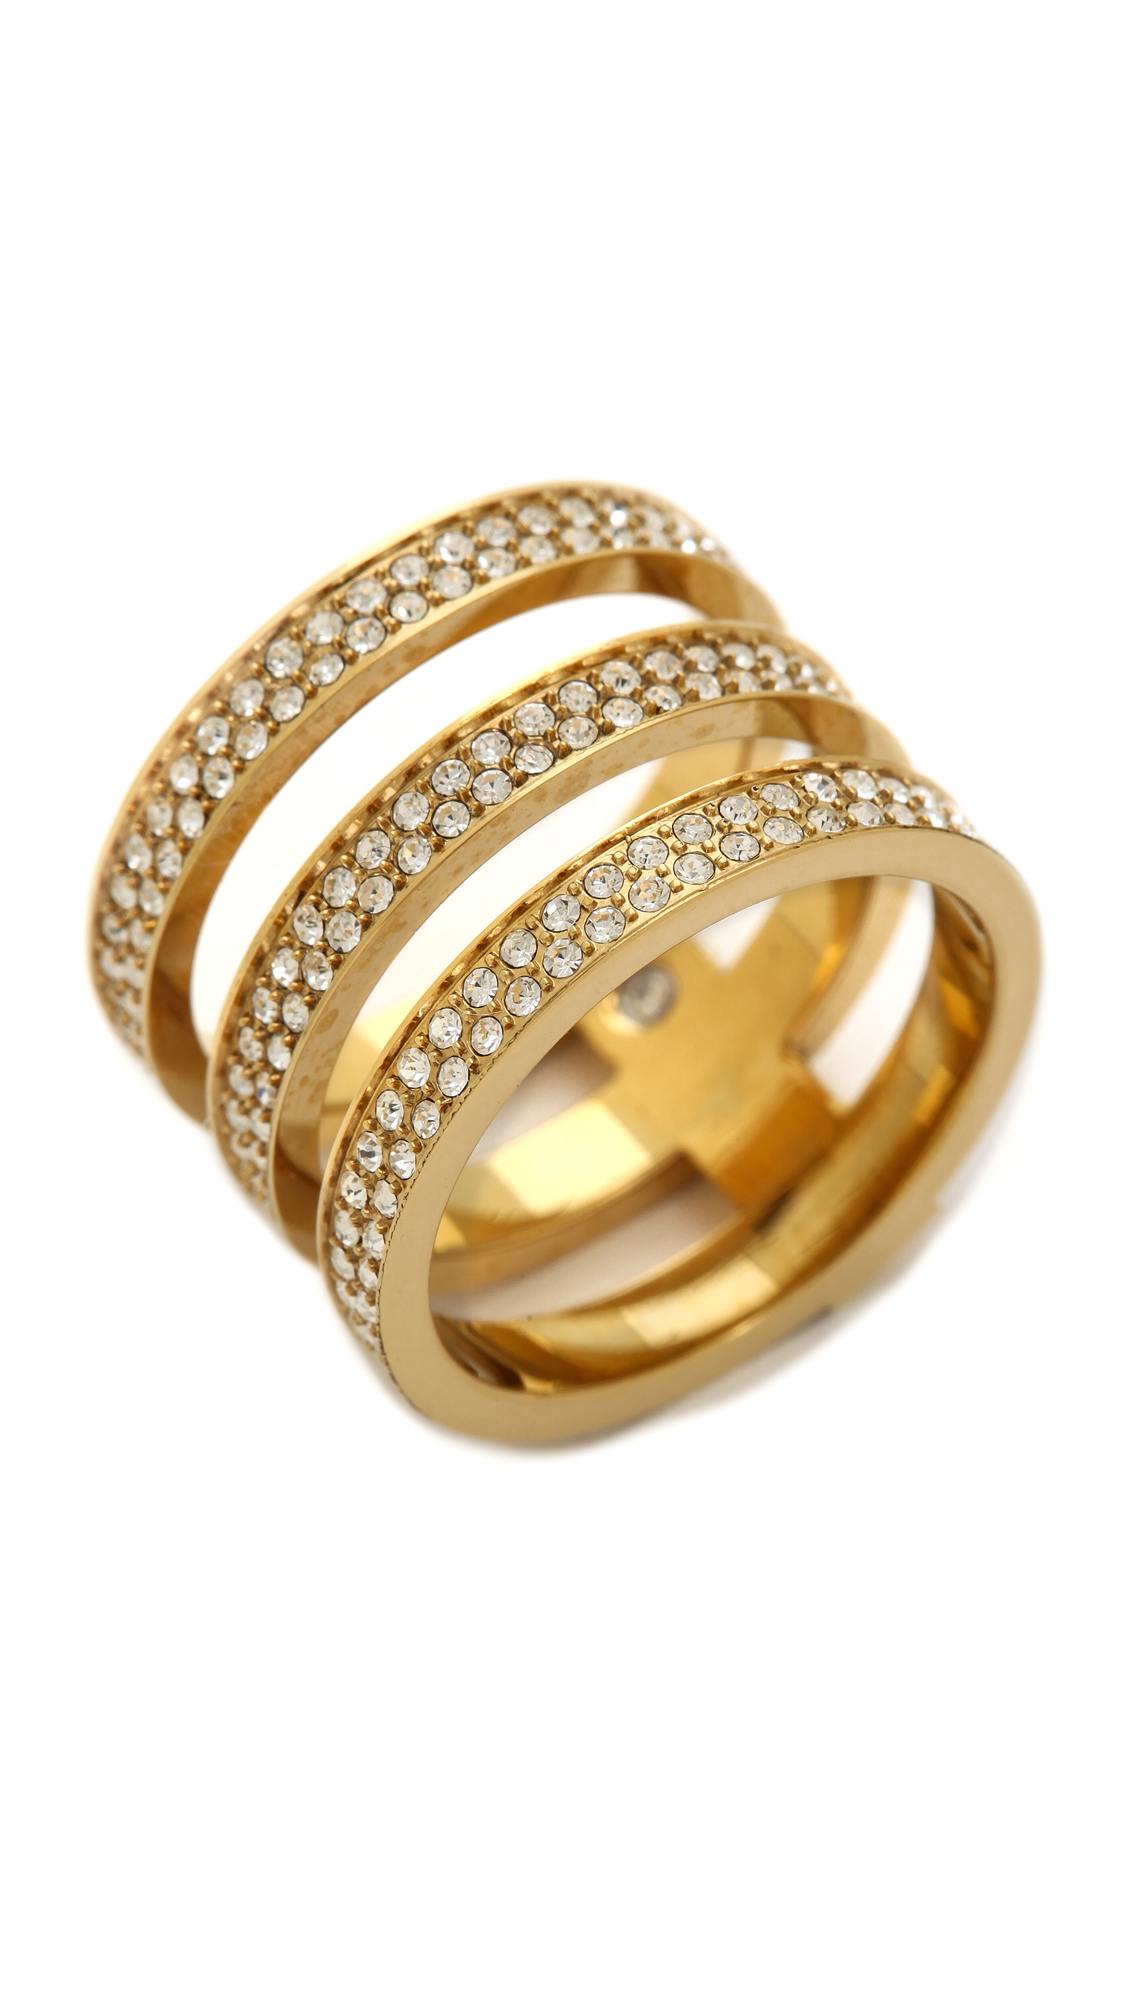 Michael Kors Tri Stack Open Pave Bar Ring Goldclear In